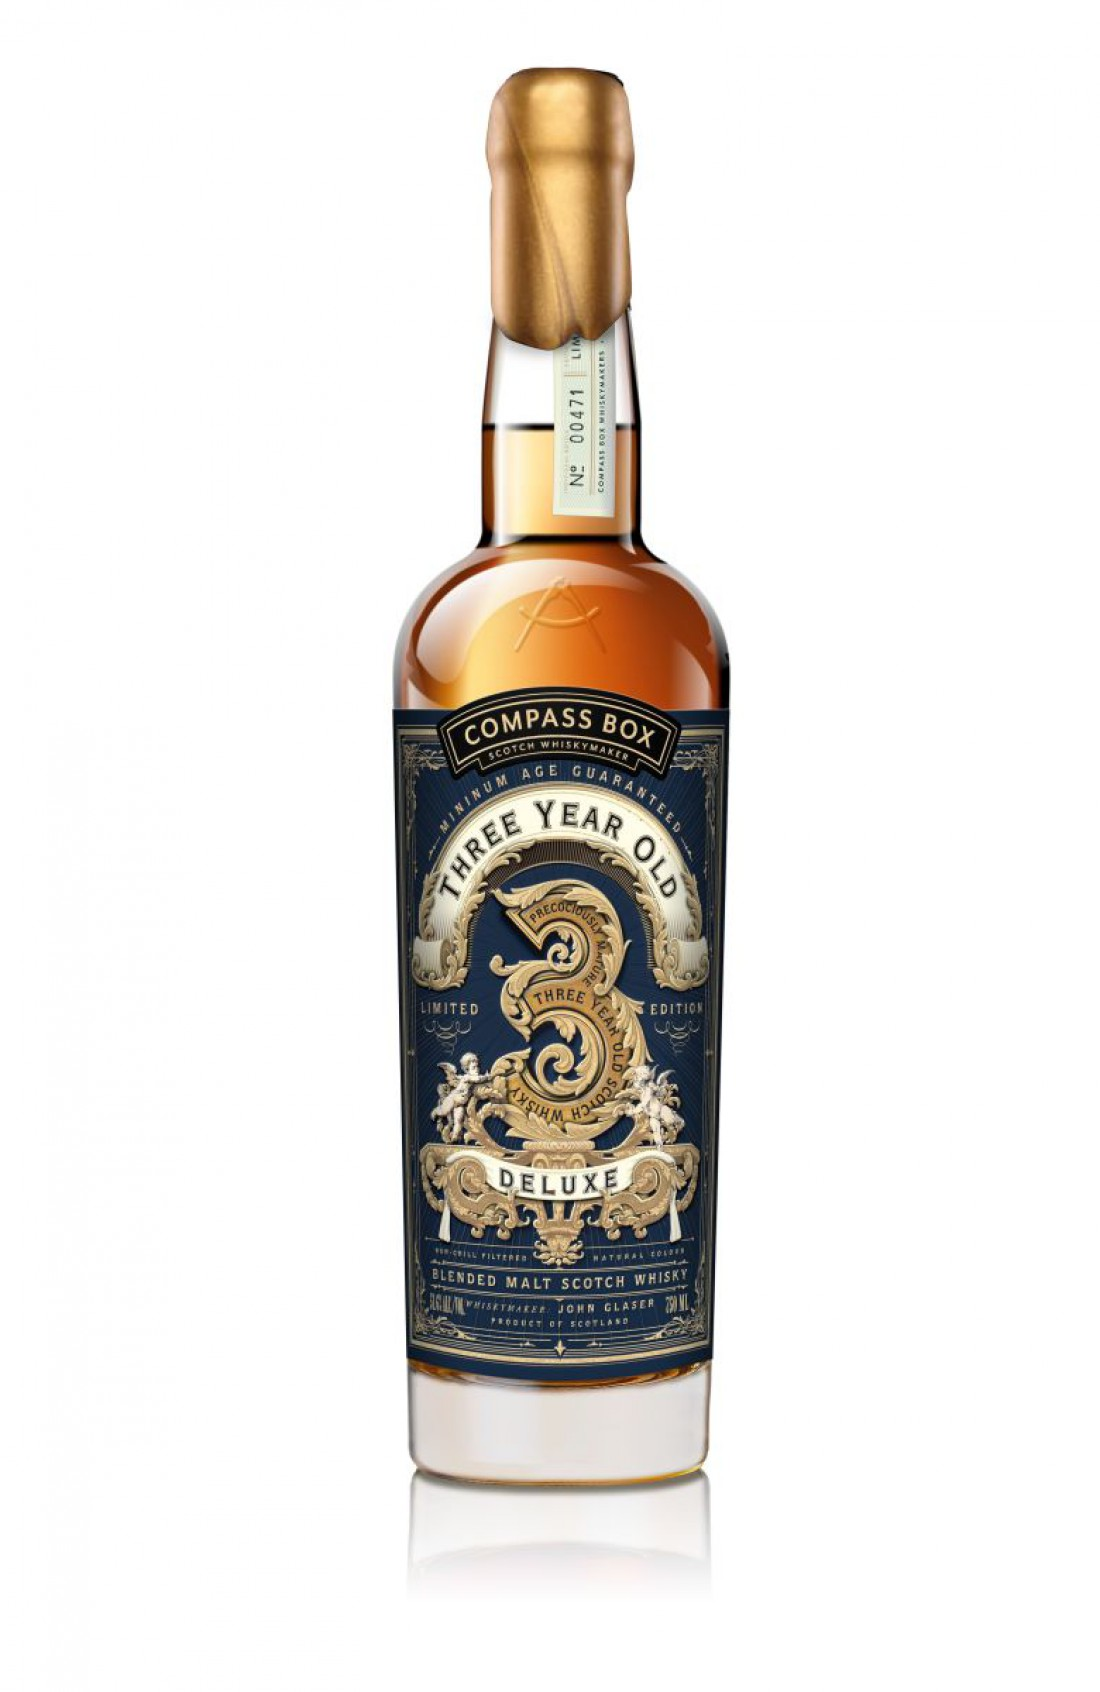 Compass Box Three Year Old Deluxe — $300